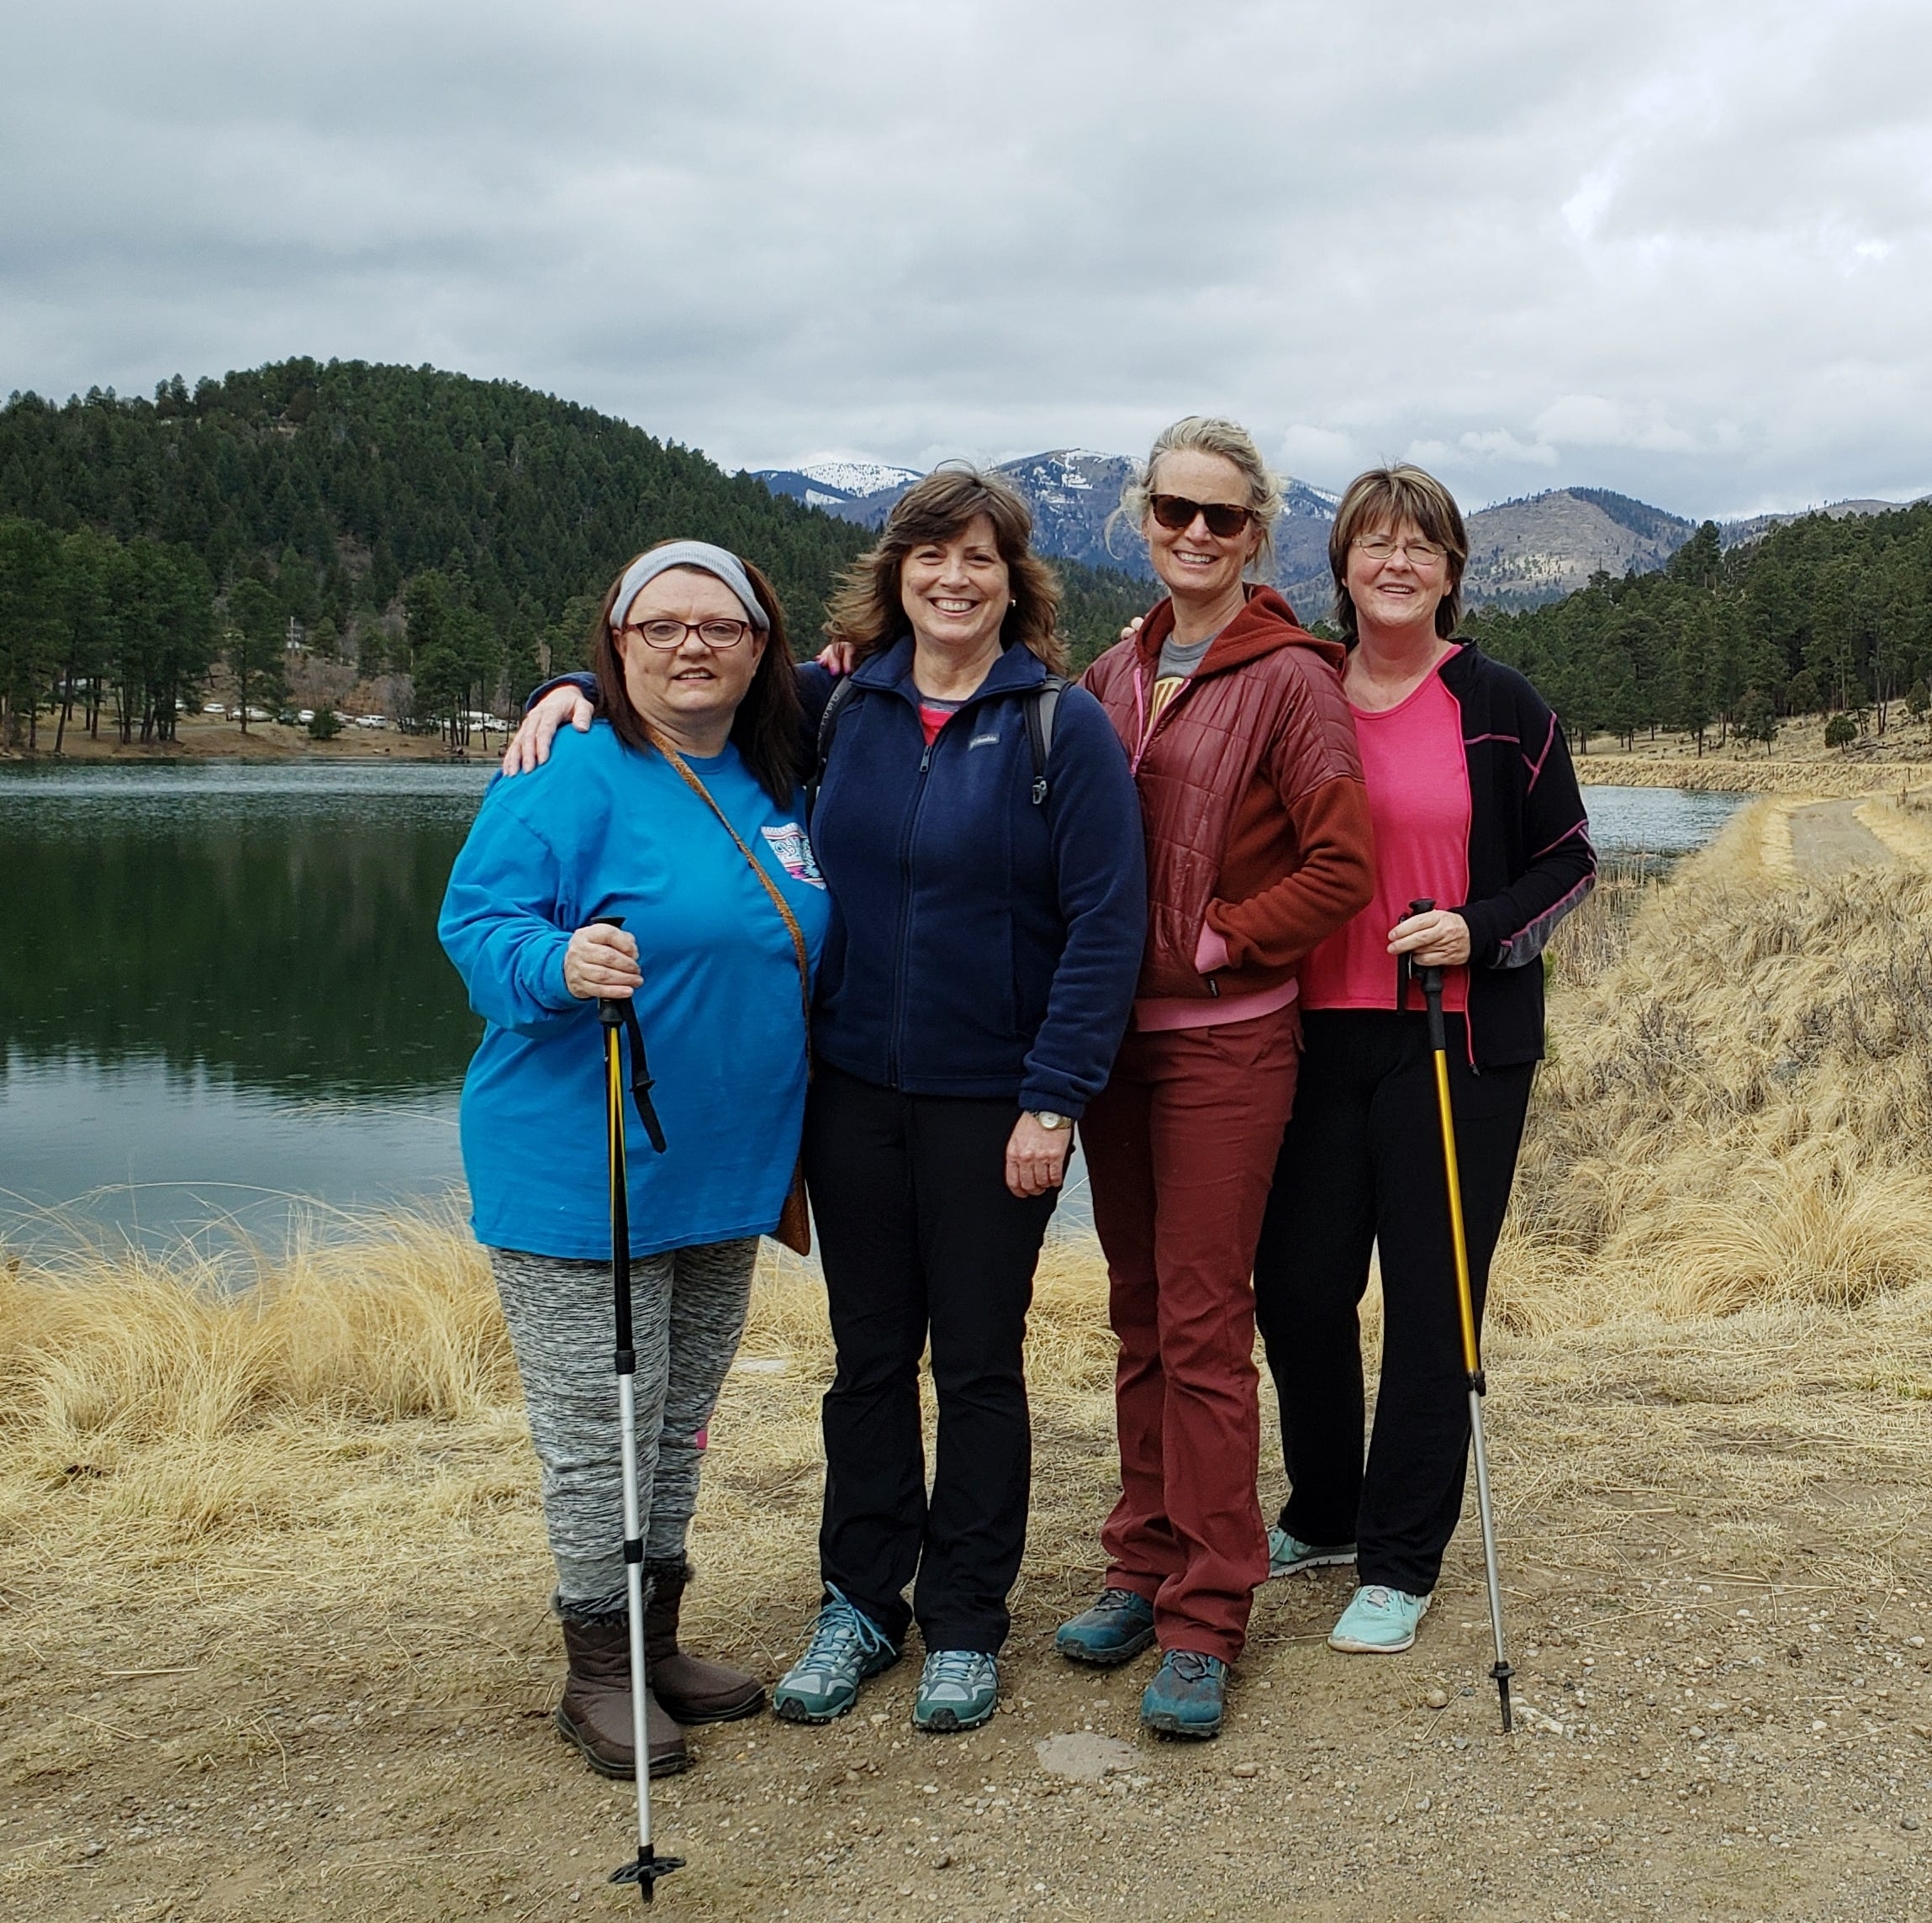 Hiking the River Ruidoso trail